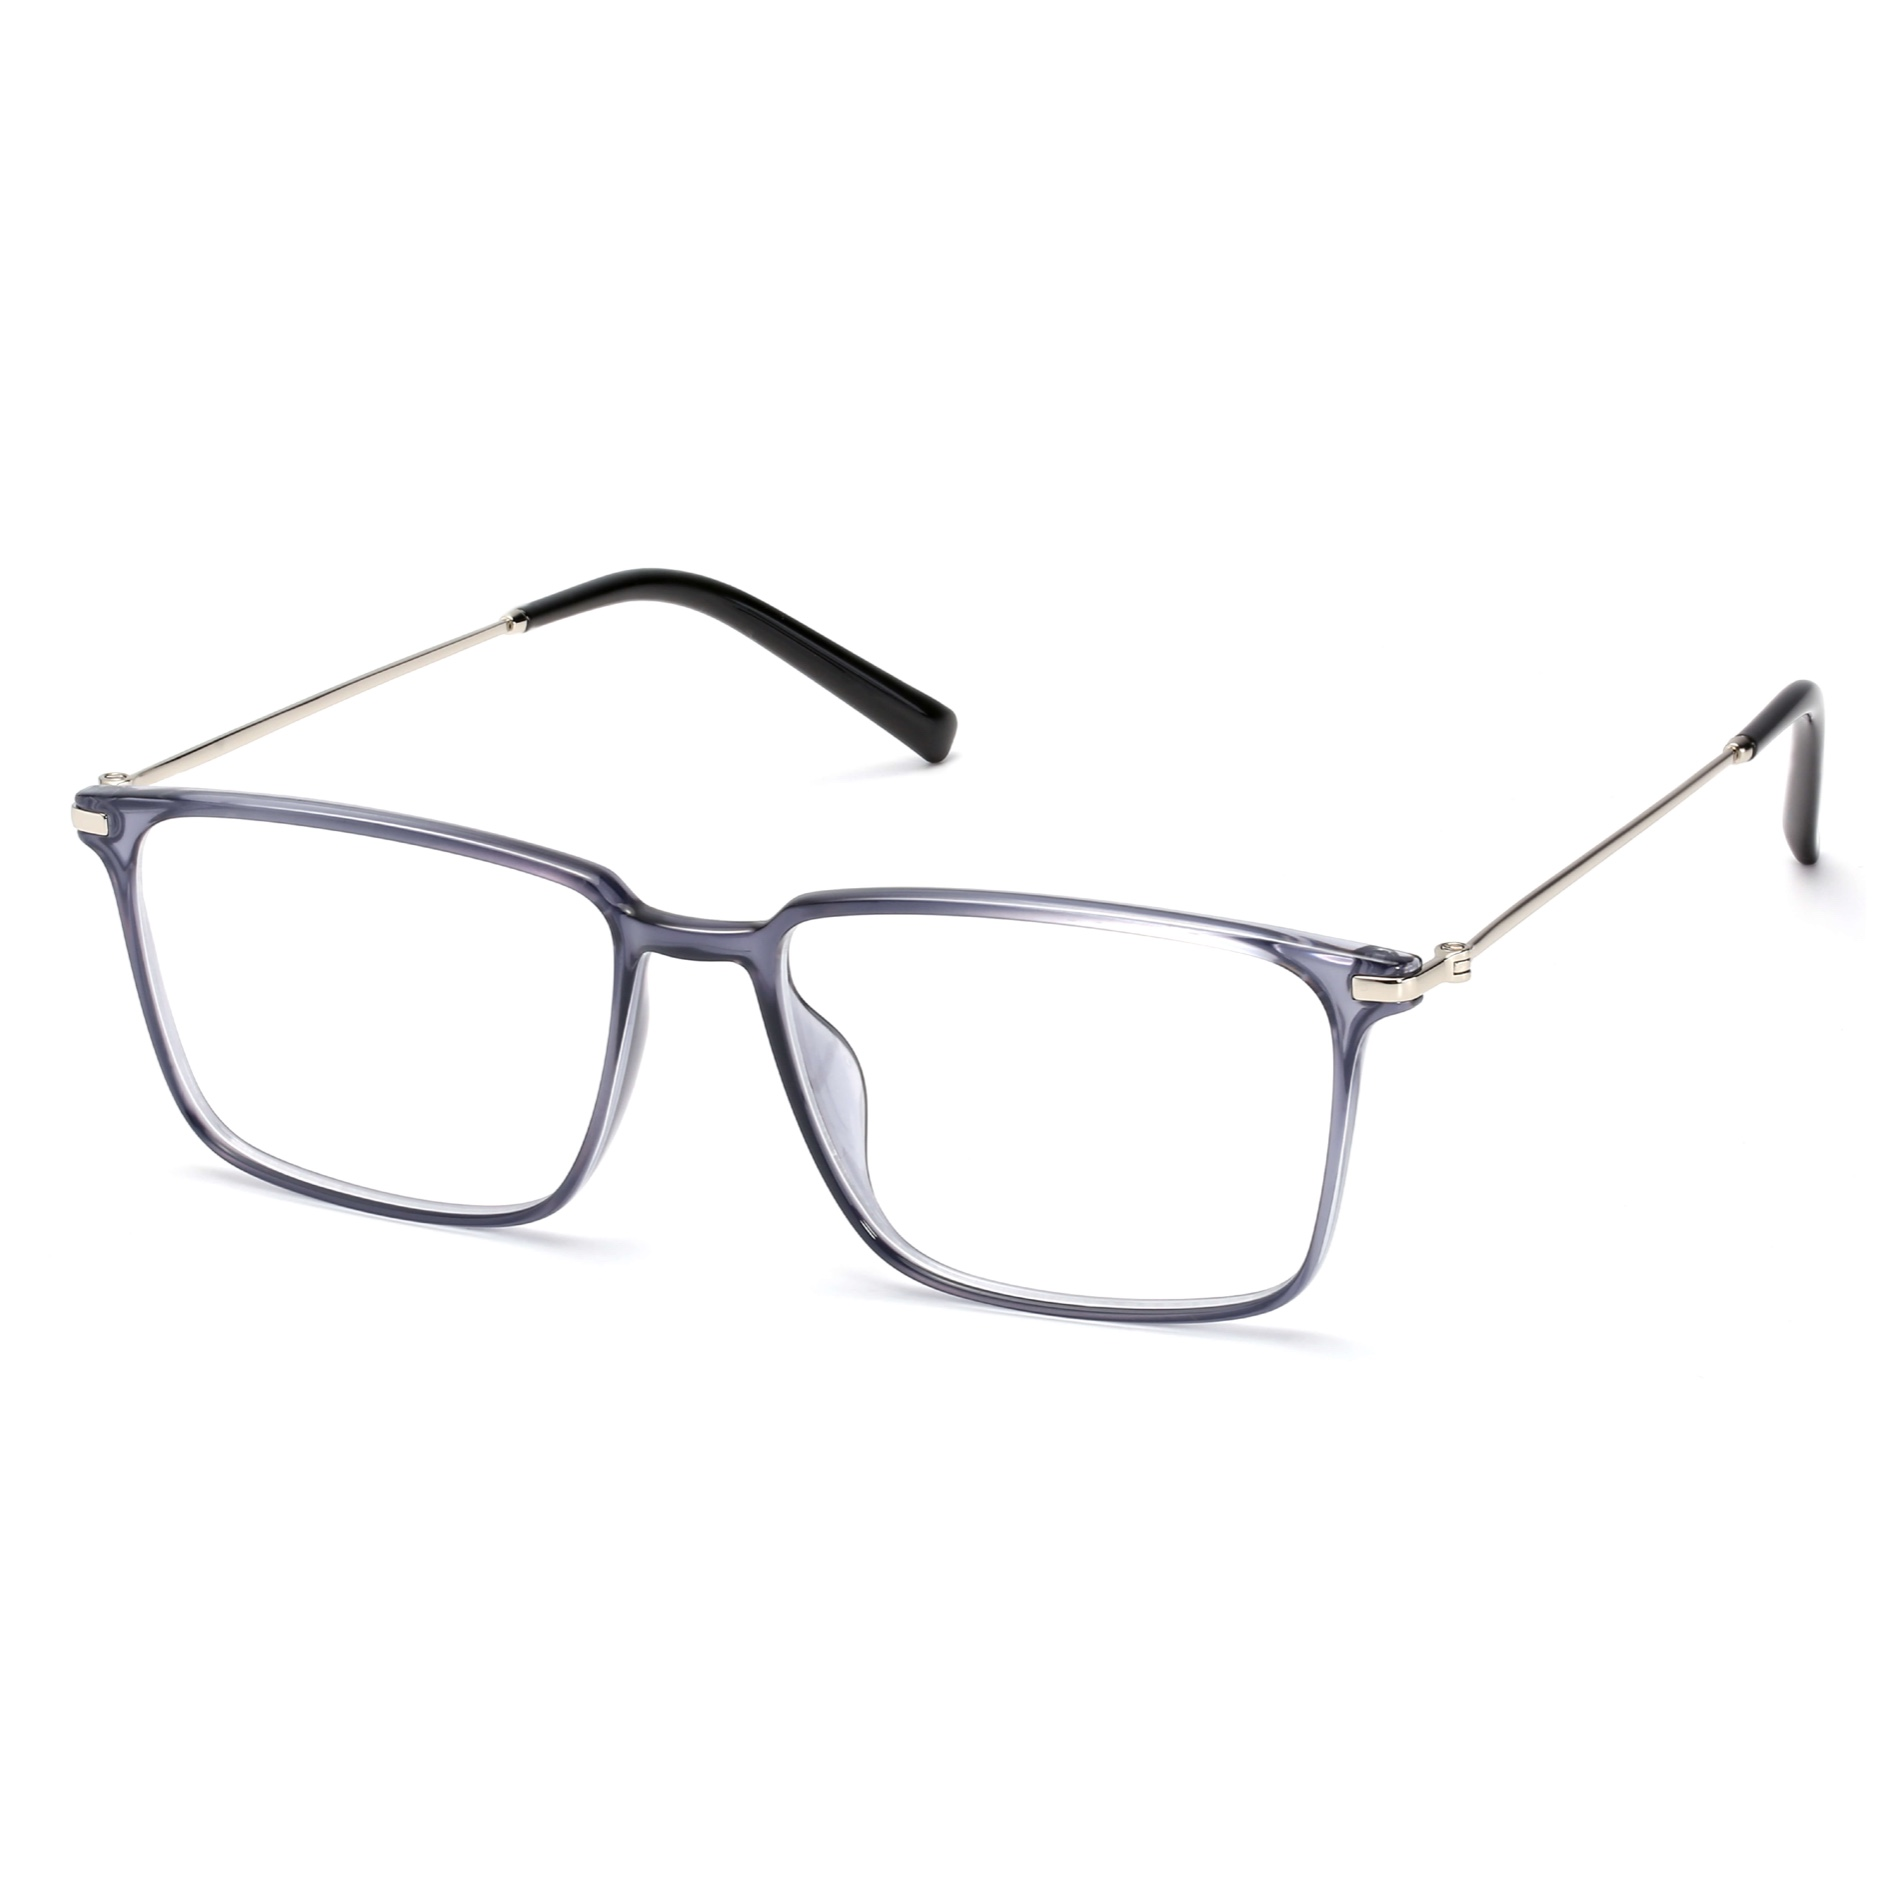 Lifestyle ß-Plastic Optical Frame and Metal Temple Ultraflexible Optiacl Frame Manufacturers, Lifestyle ß-Plastic Optical Frame and Metal Temple Ultraflexible Optiacl Frame Factory, Supply Lifestyle ß-Plastic Optical Frame and Metal Temple Ultraflexible Optiacl Frame